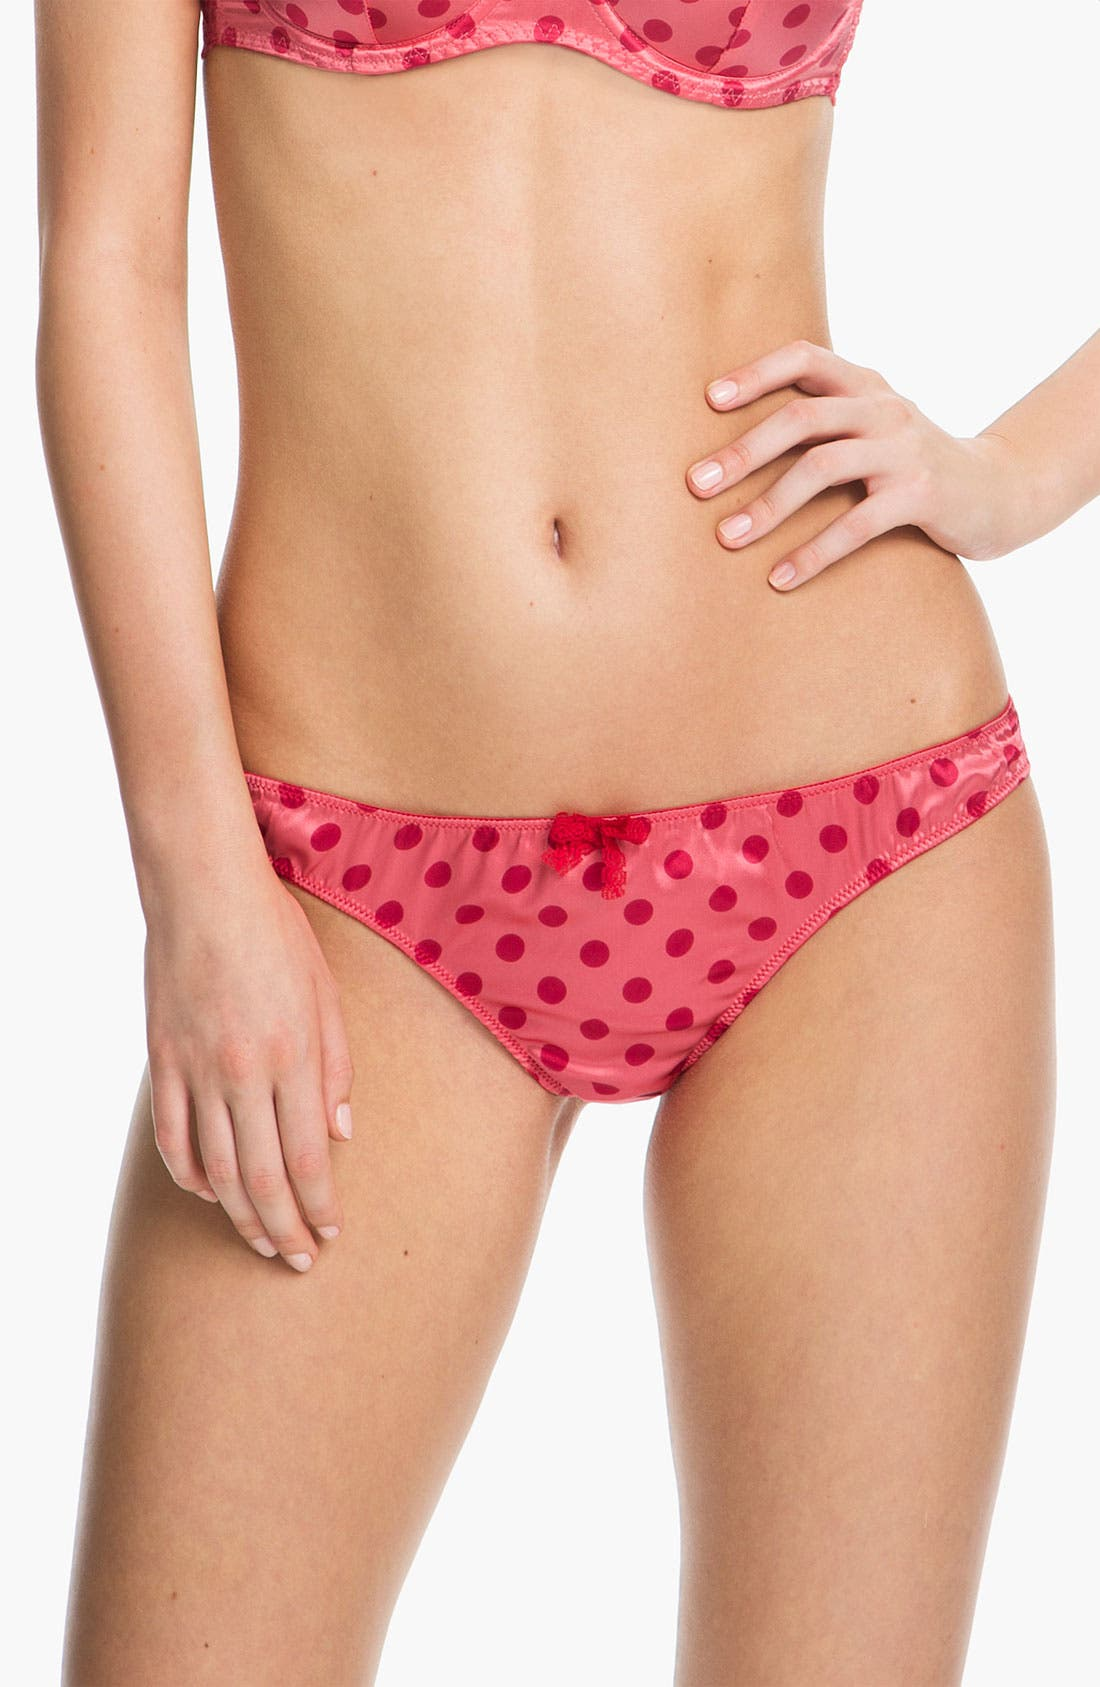 Alternate Image 1 Selected - Mimi Holliday 'Confetti Bomb' Bow Thong